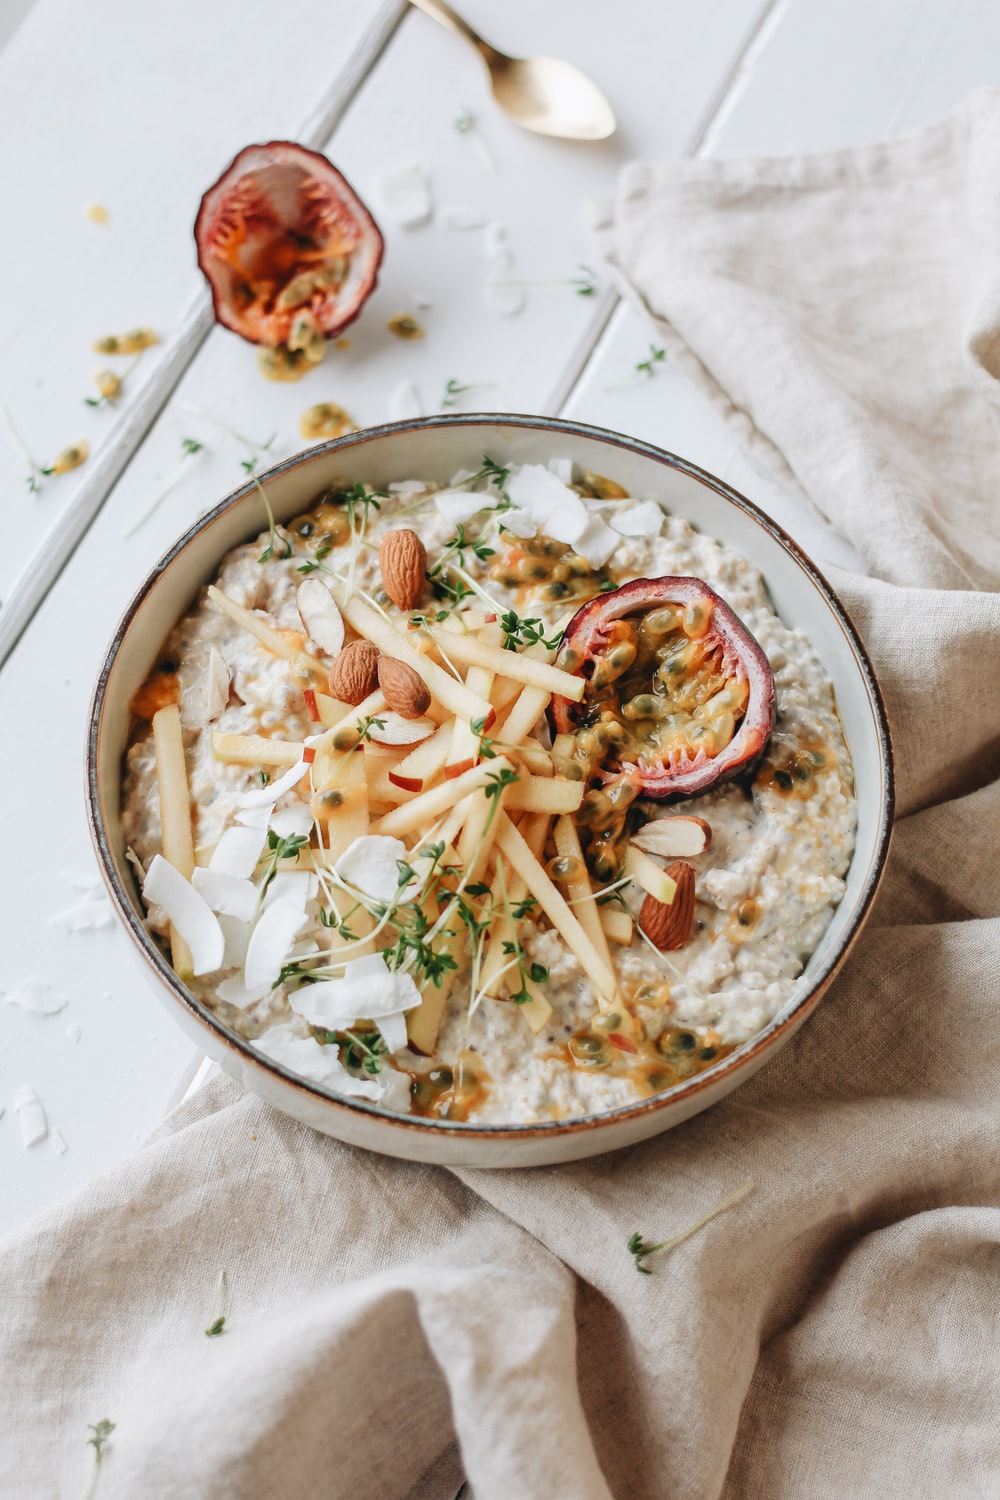 photo of bowl with cooked food on table